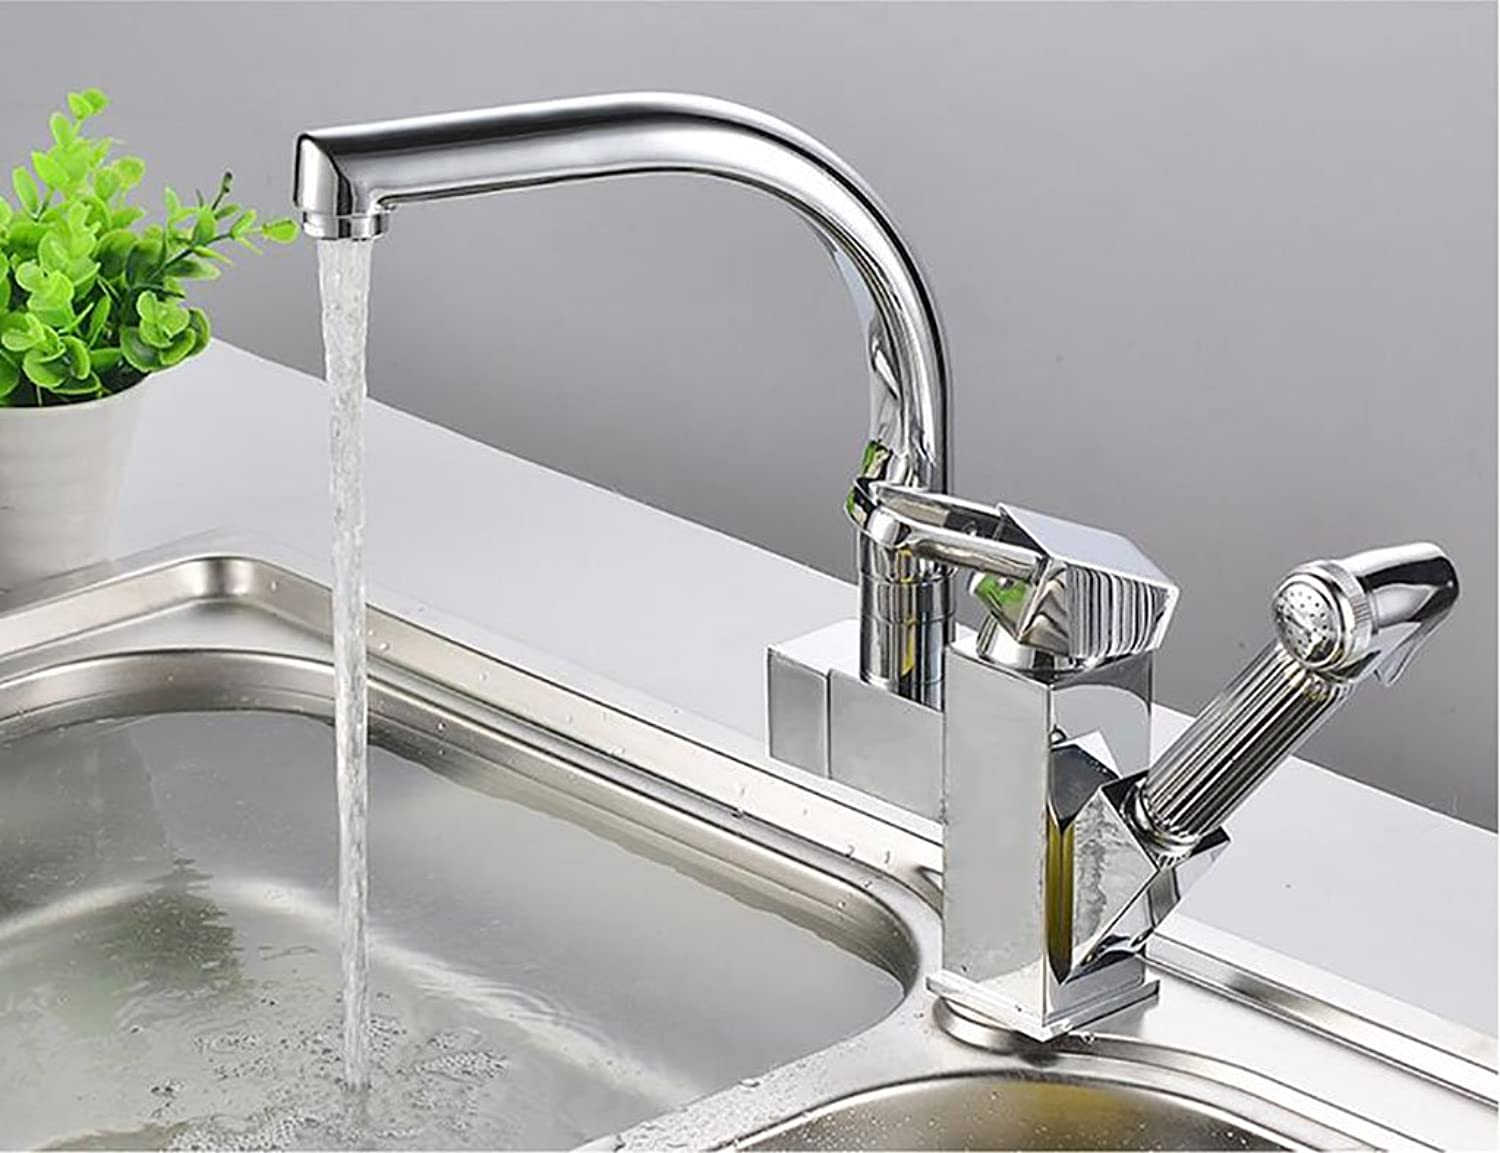 Sun LL Kitchen Faucets, Can redate The Faucet, Universal Sink Faucet